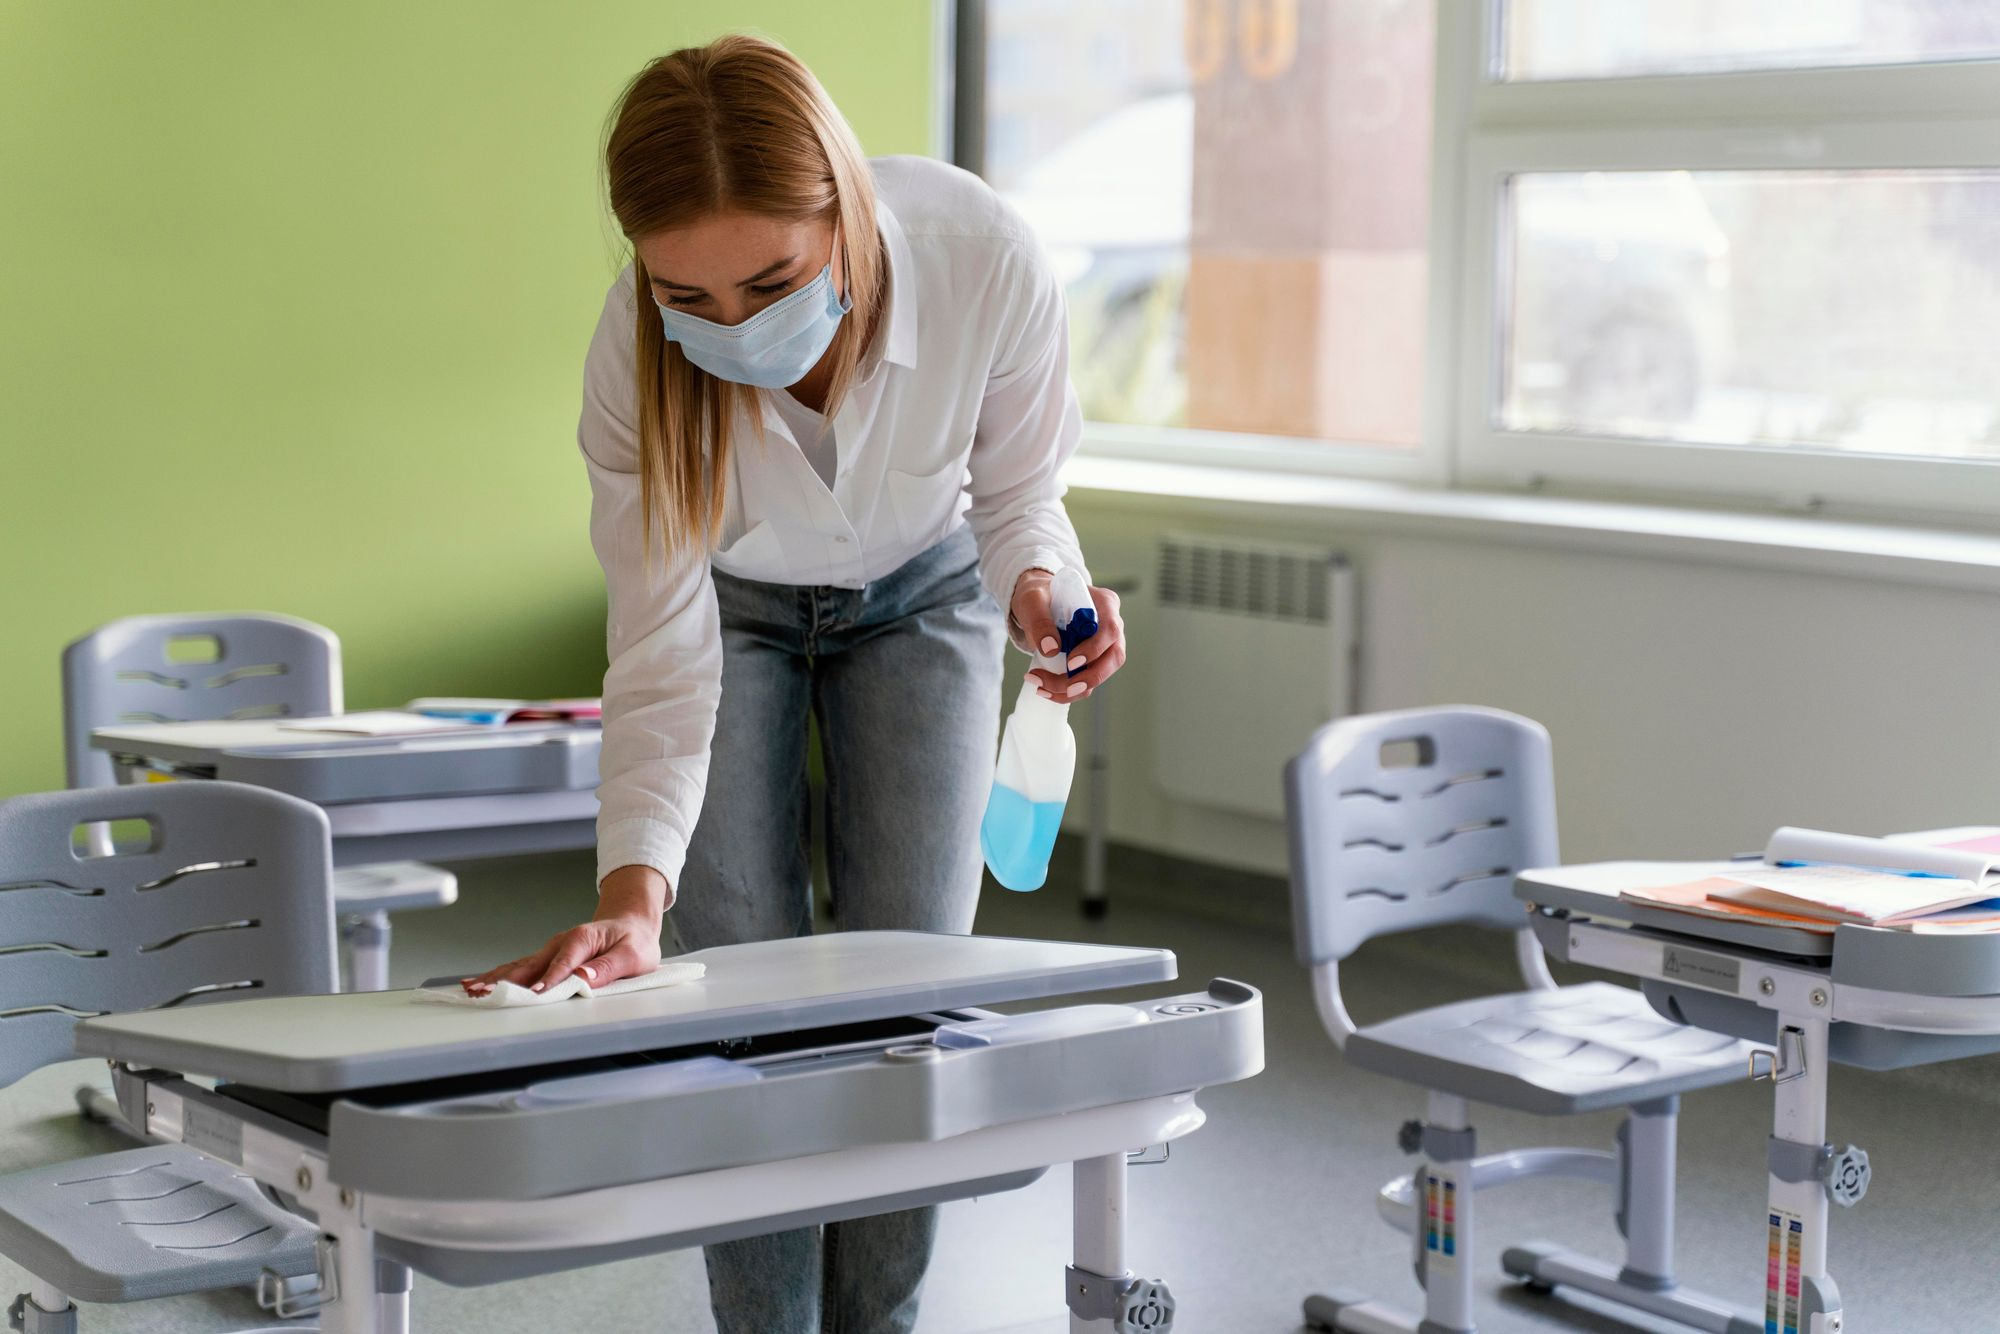 Cleaning and disinfecting classrooms and school, daily sanitisation